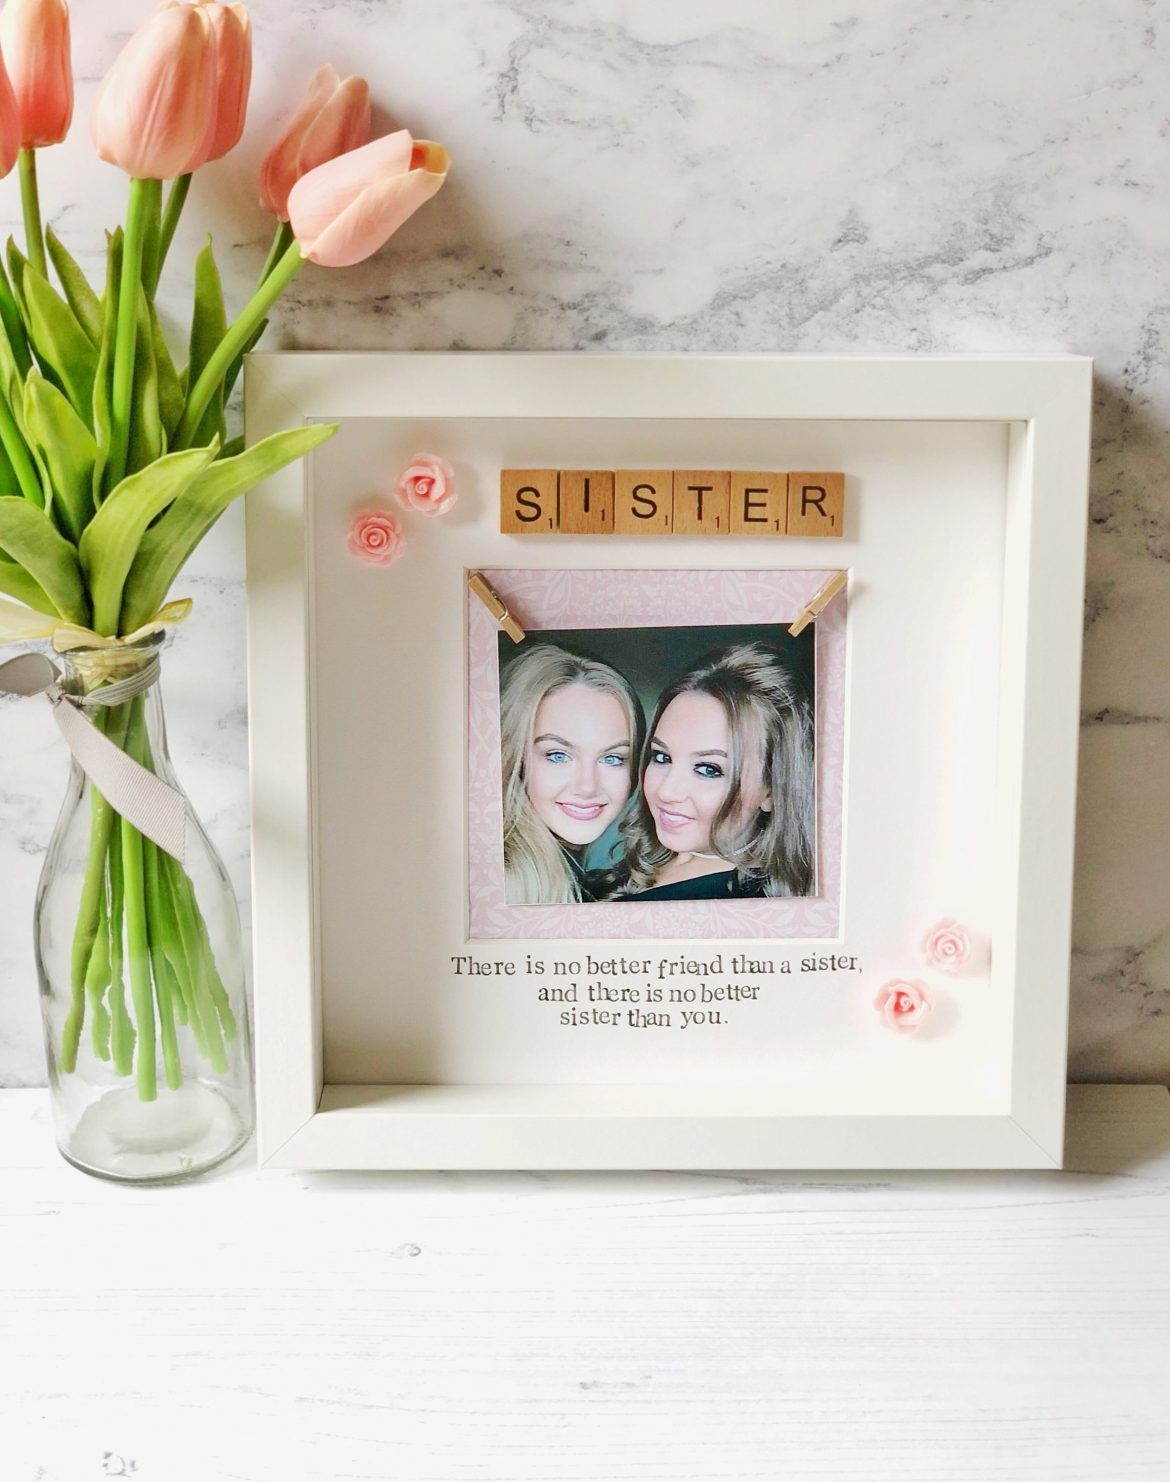 Maid of Honor Gifts for Sister: 10 Best Gifts to Give the Best MOHs #giftsforsister